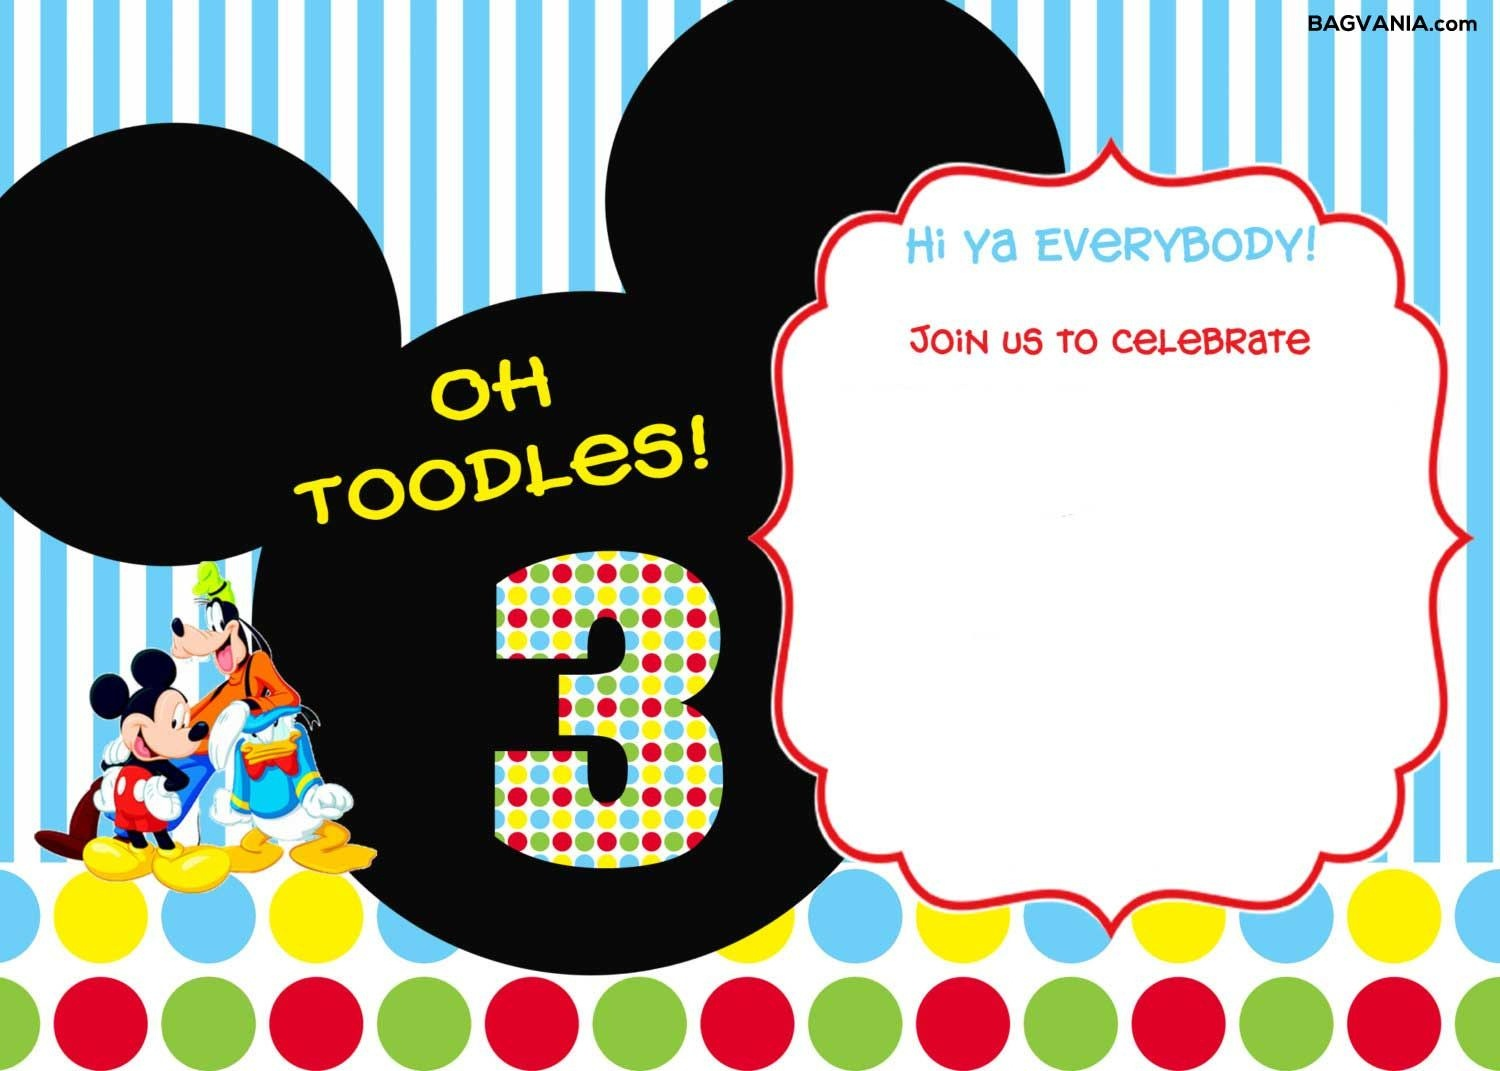 Download Free Printable Mickey Mouse Birthday Invitations | Bagvania - Free Printable Mickey Mouse Birthday Invitations